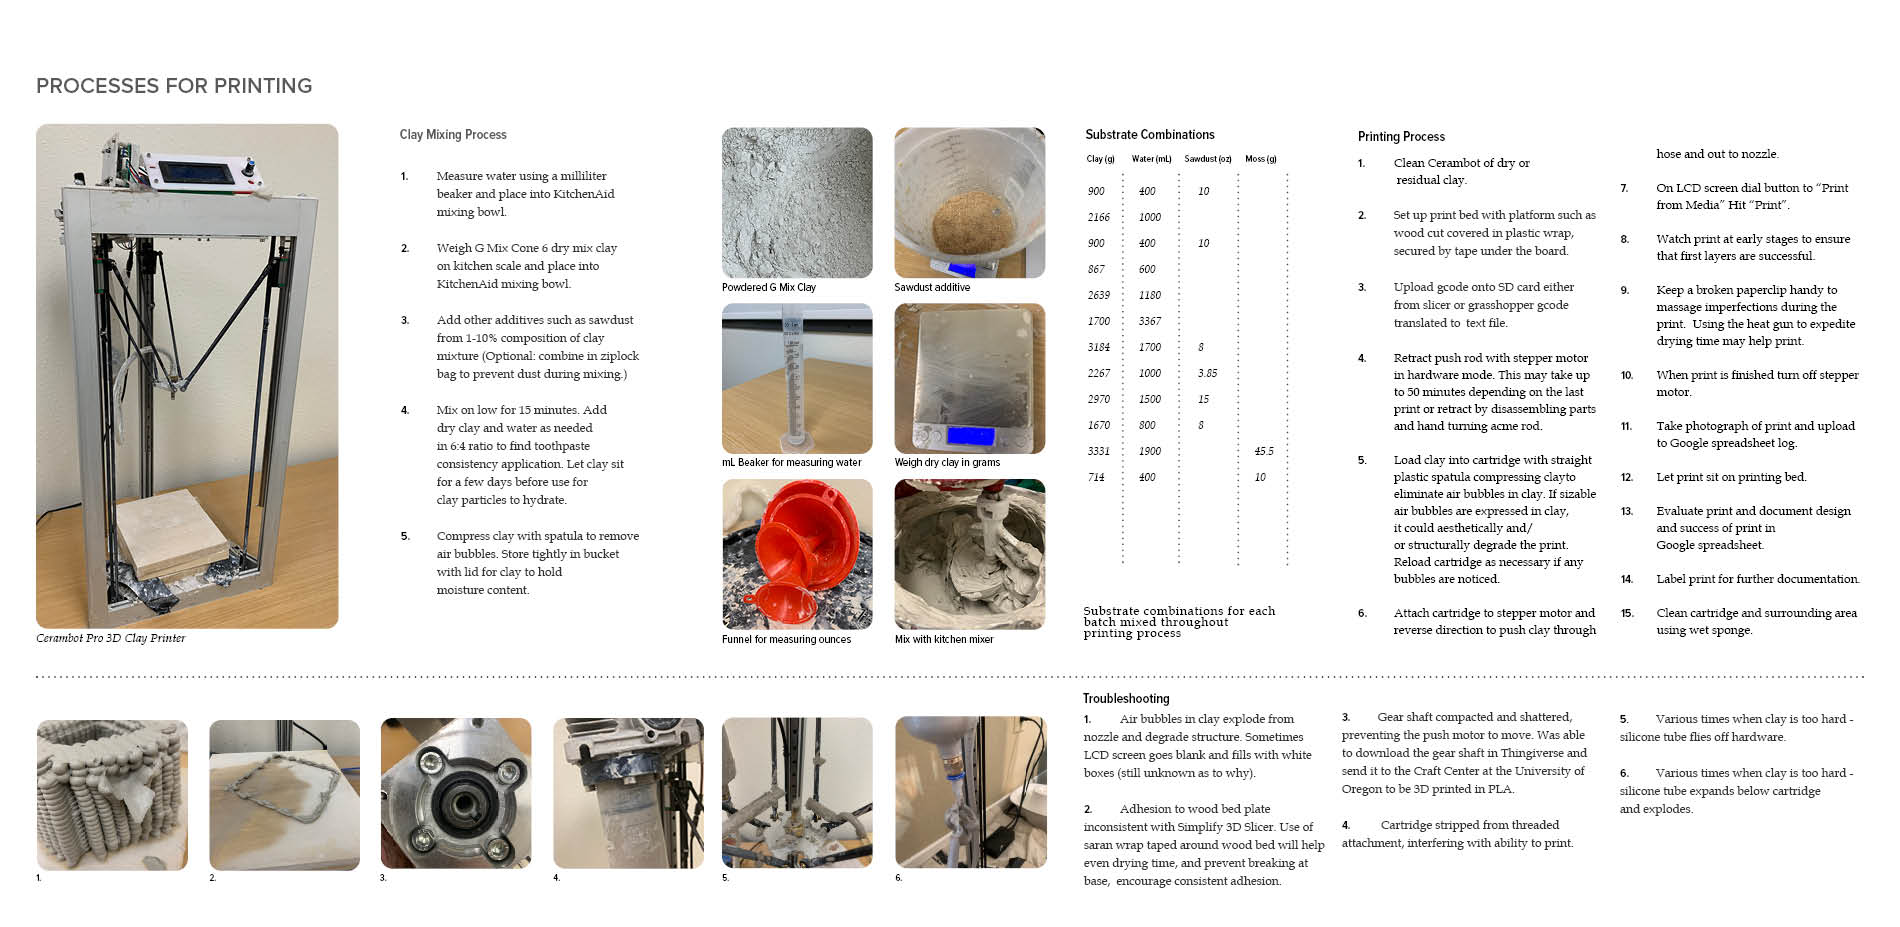 Processes for Printing